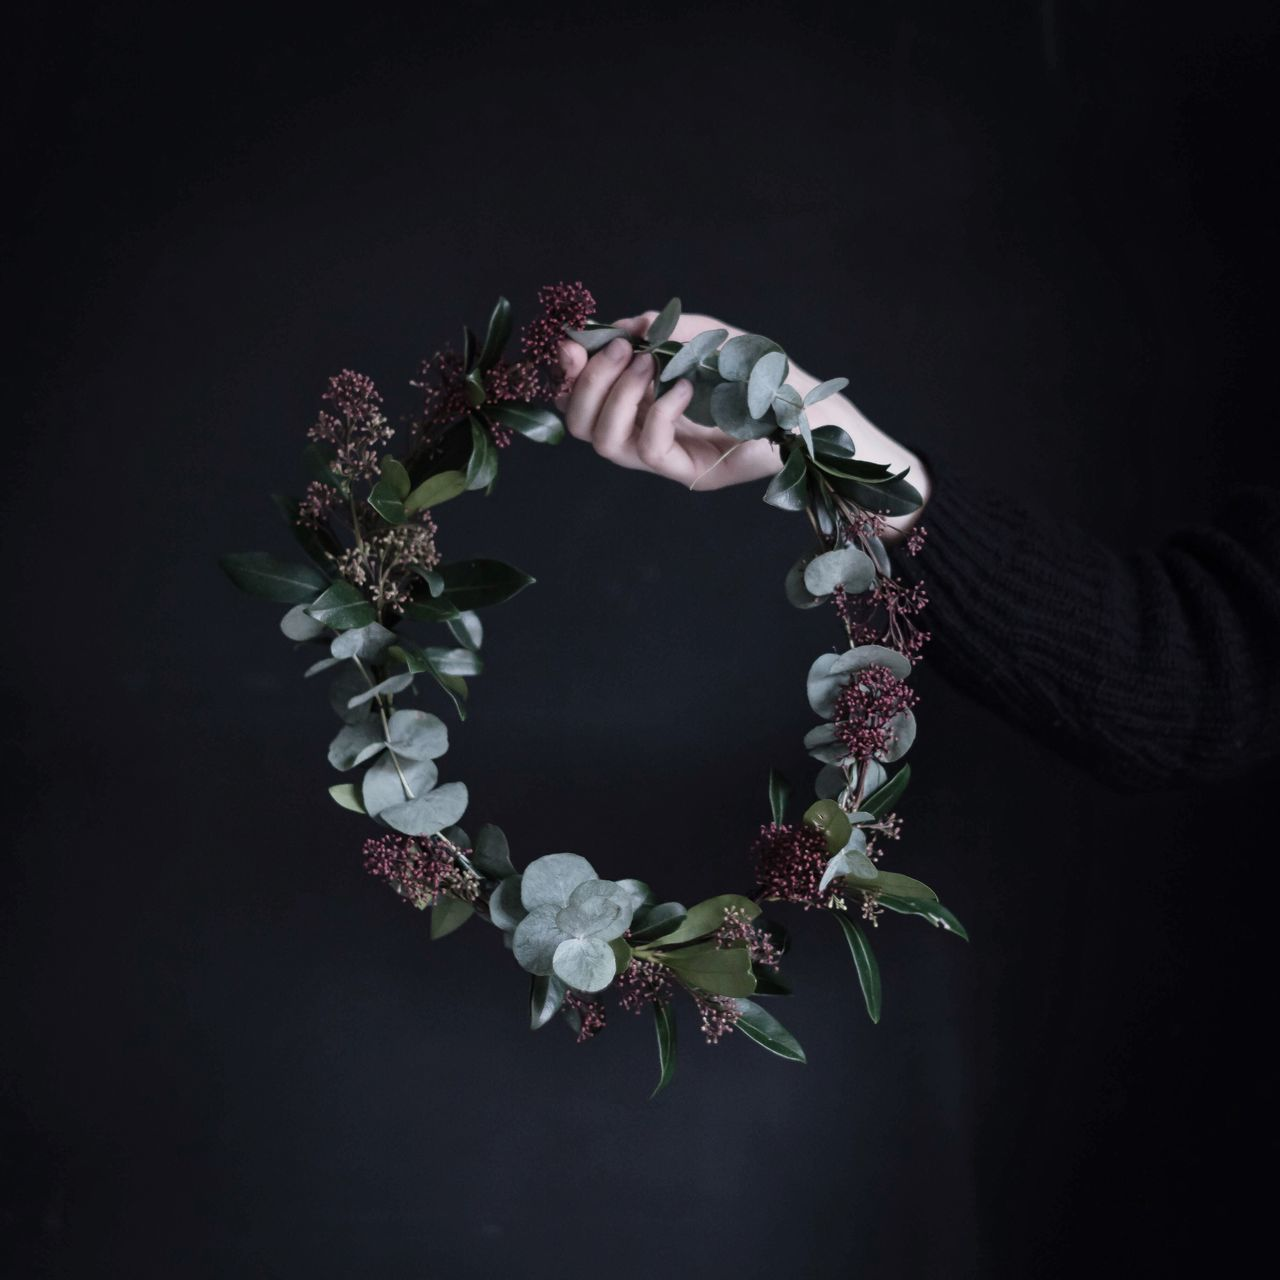 Woman holding flowers against black background